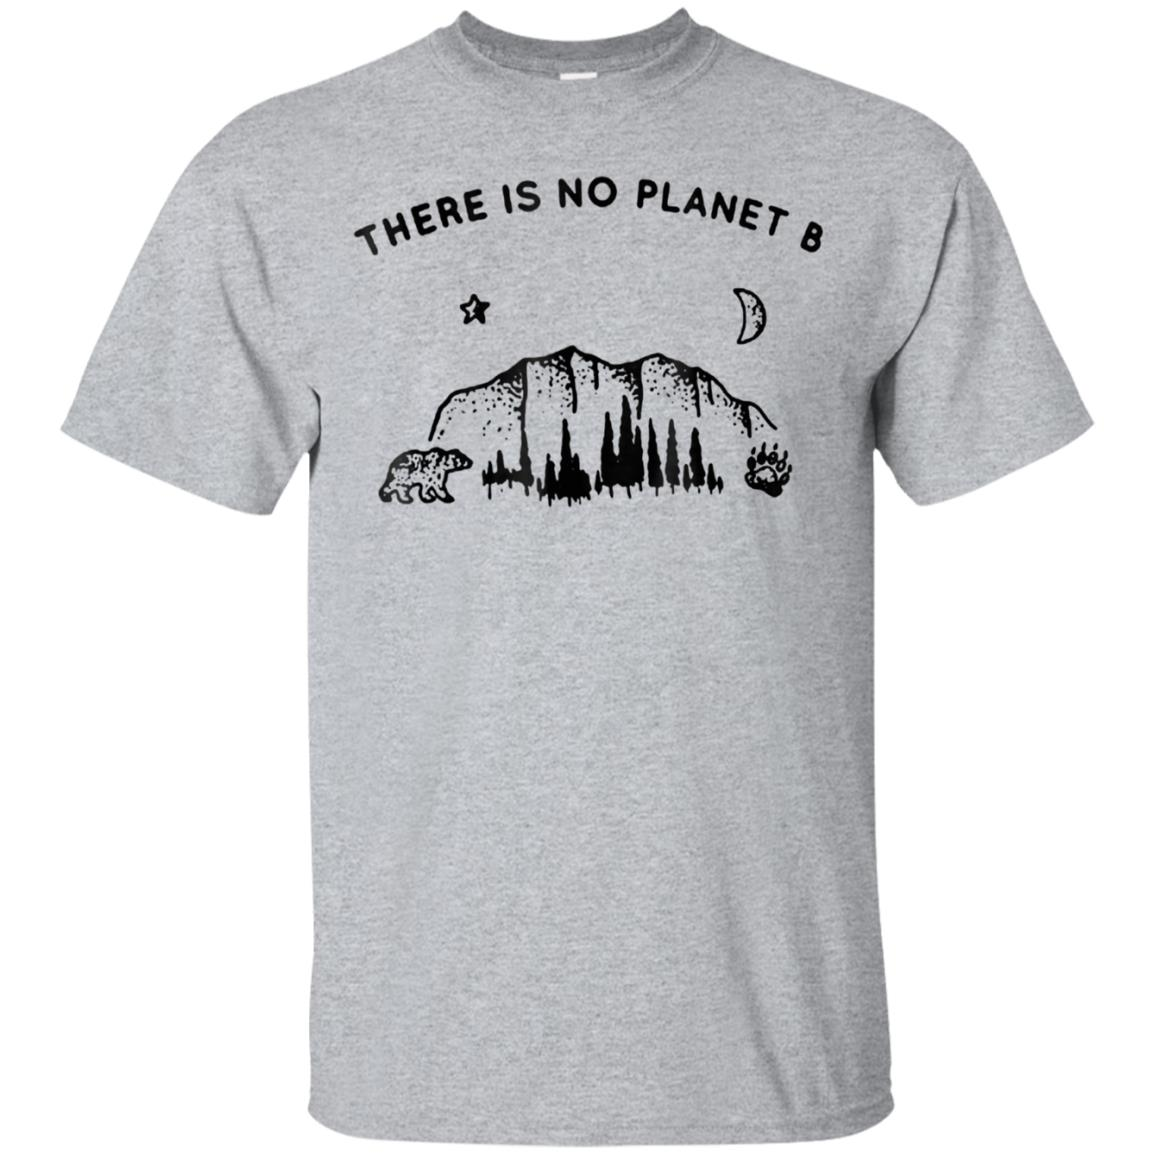 There is No Planet B T-Shirt 99promocode